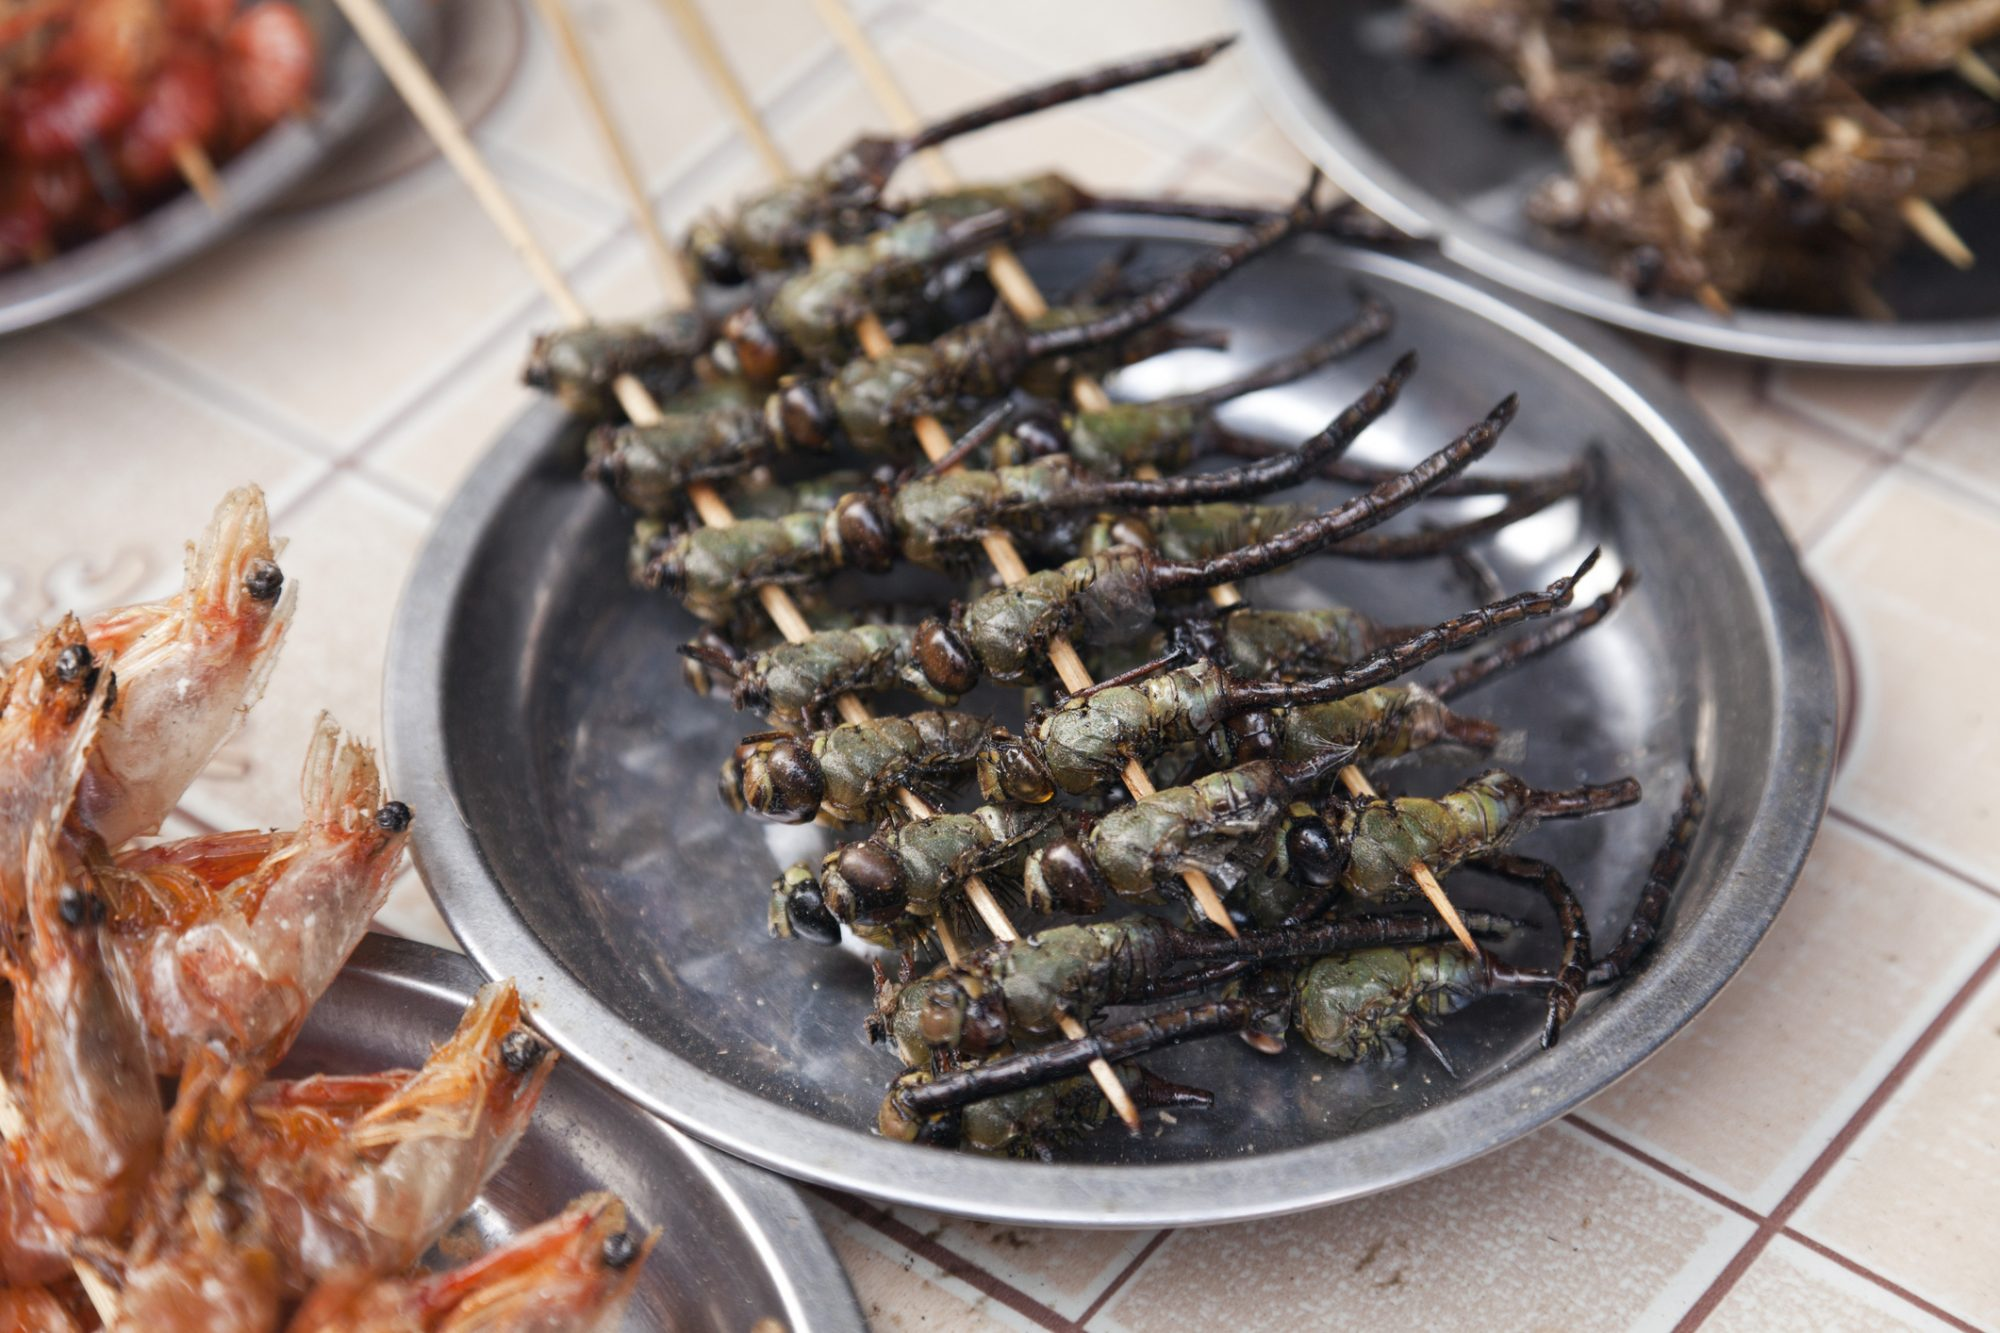 Fried dragonflies for sale in China